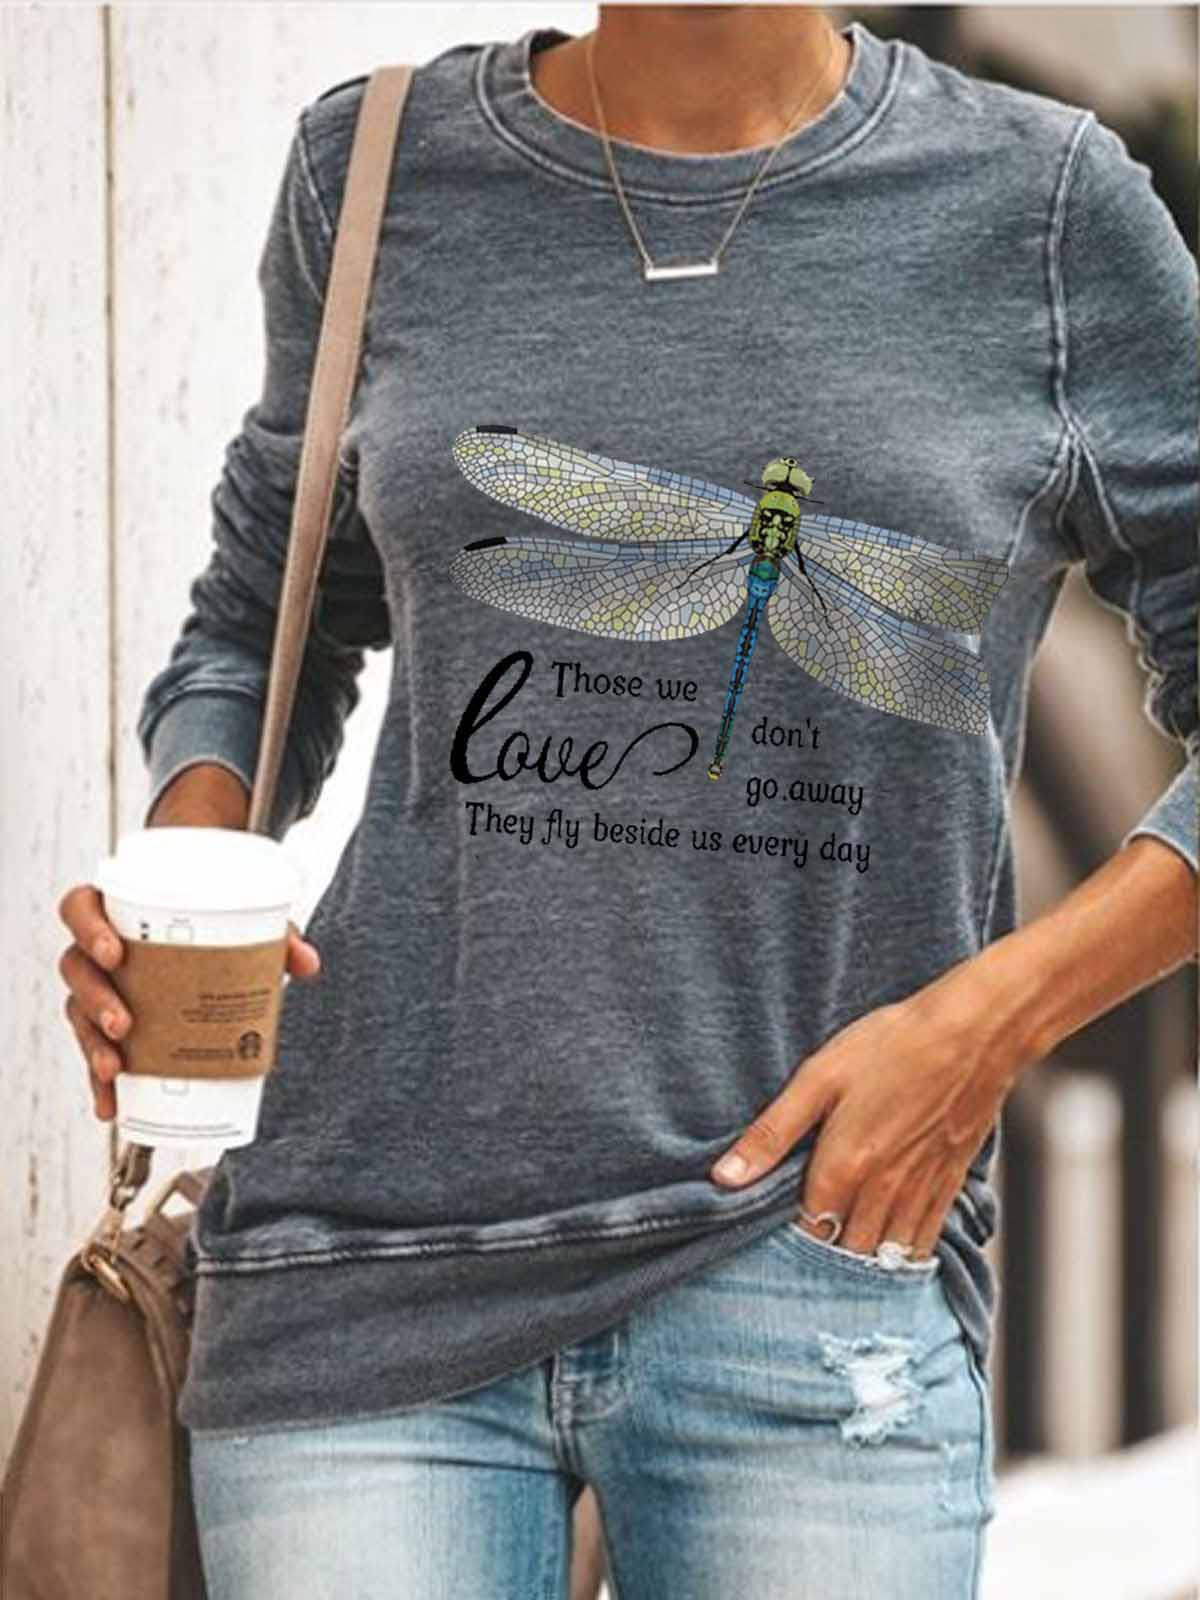 Women Love Those We Don't Go Away They Fly Beside Us Every Day Print Comfortable Sweatshirt